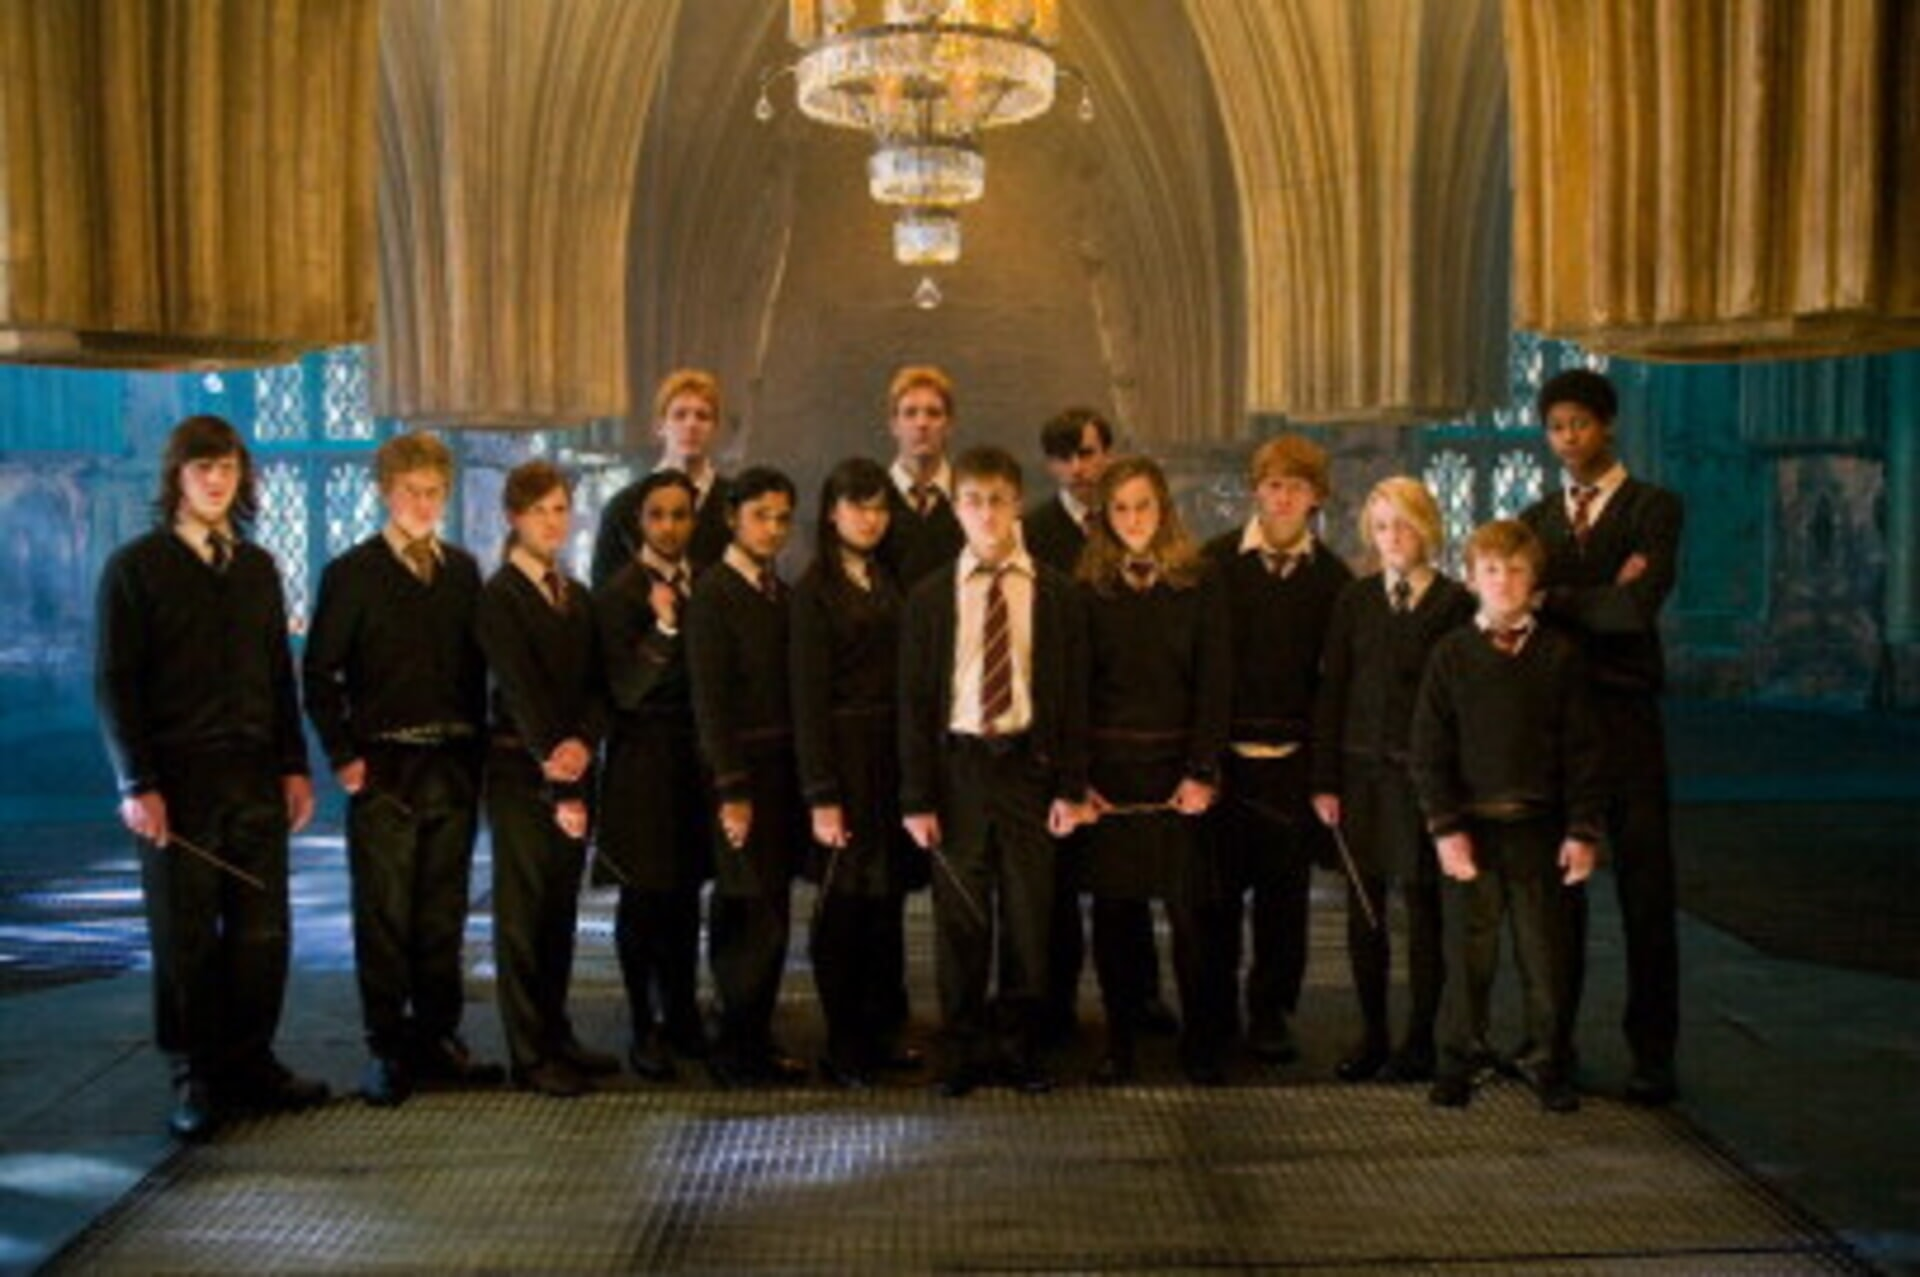 Harry Potter and the Order of the Phoenix - Image 35